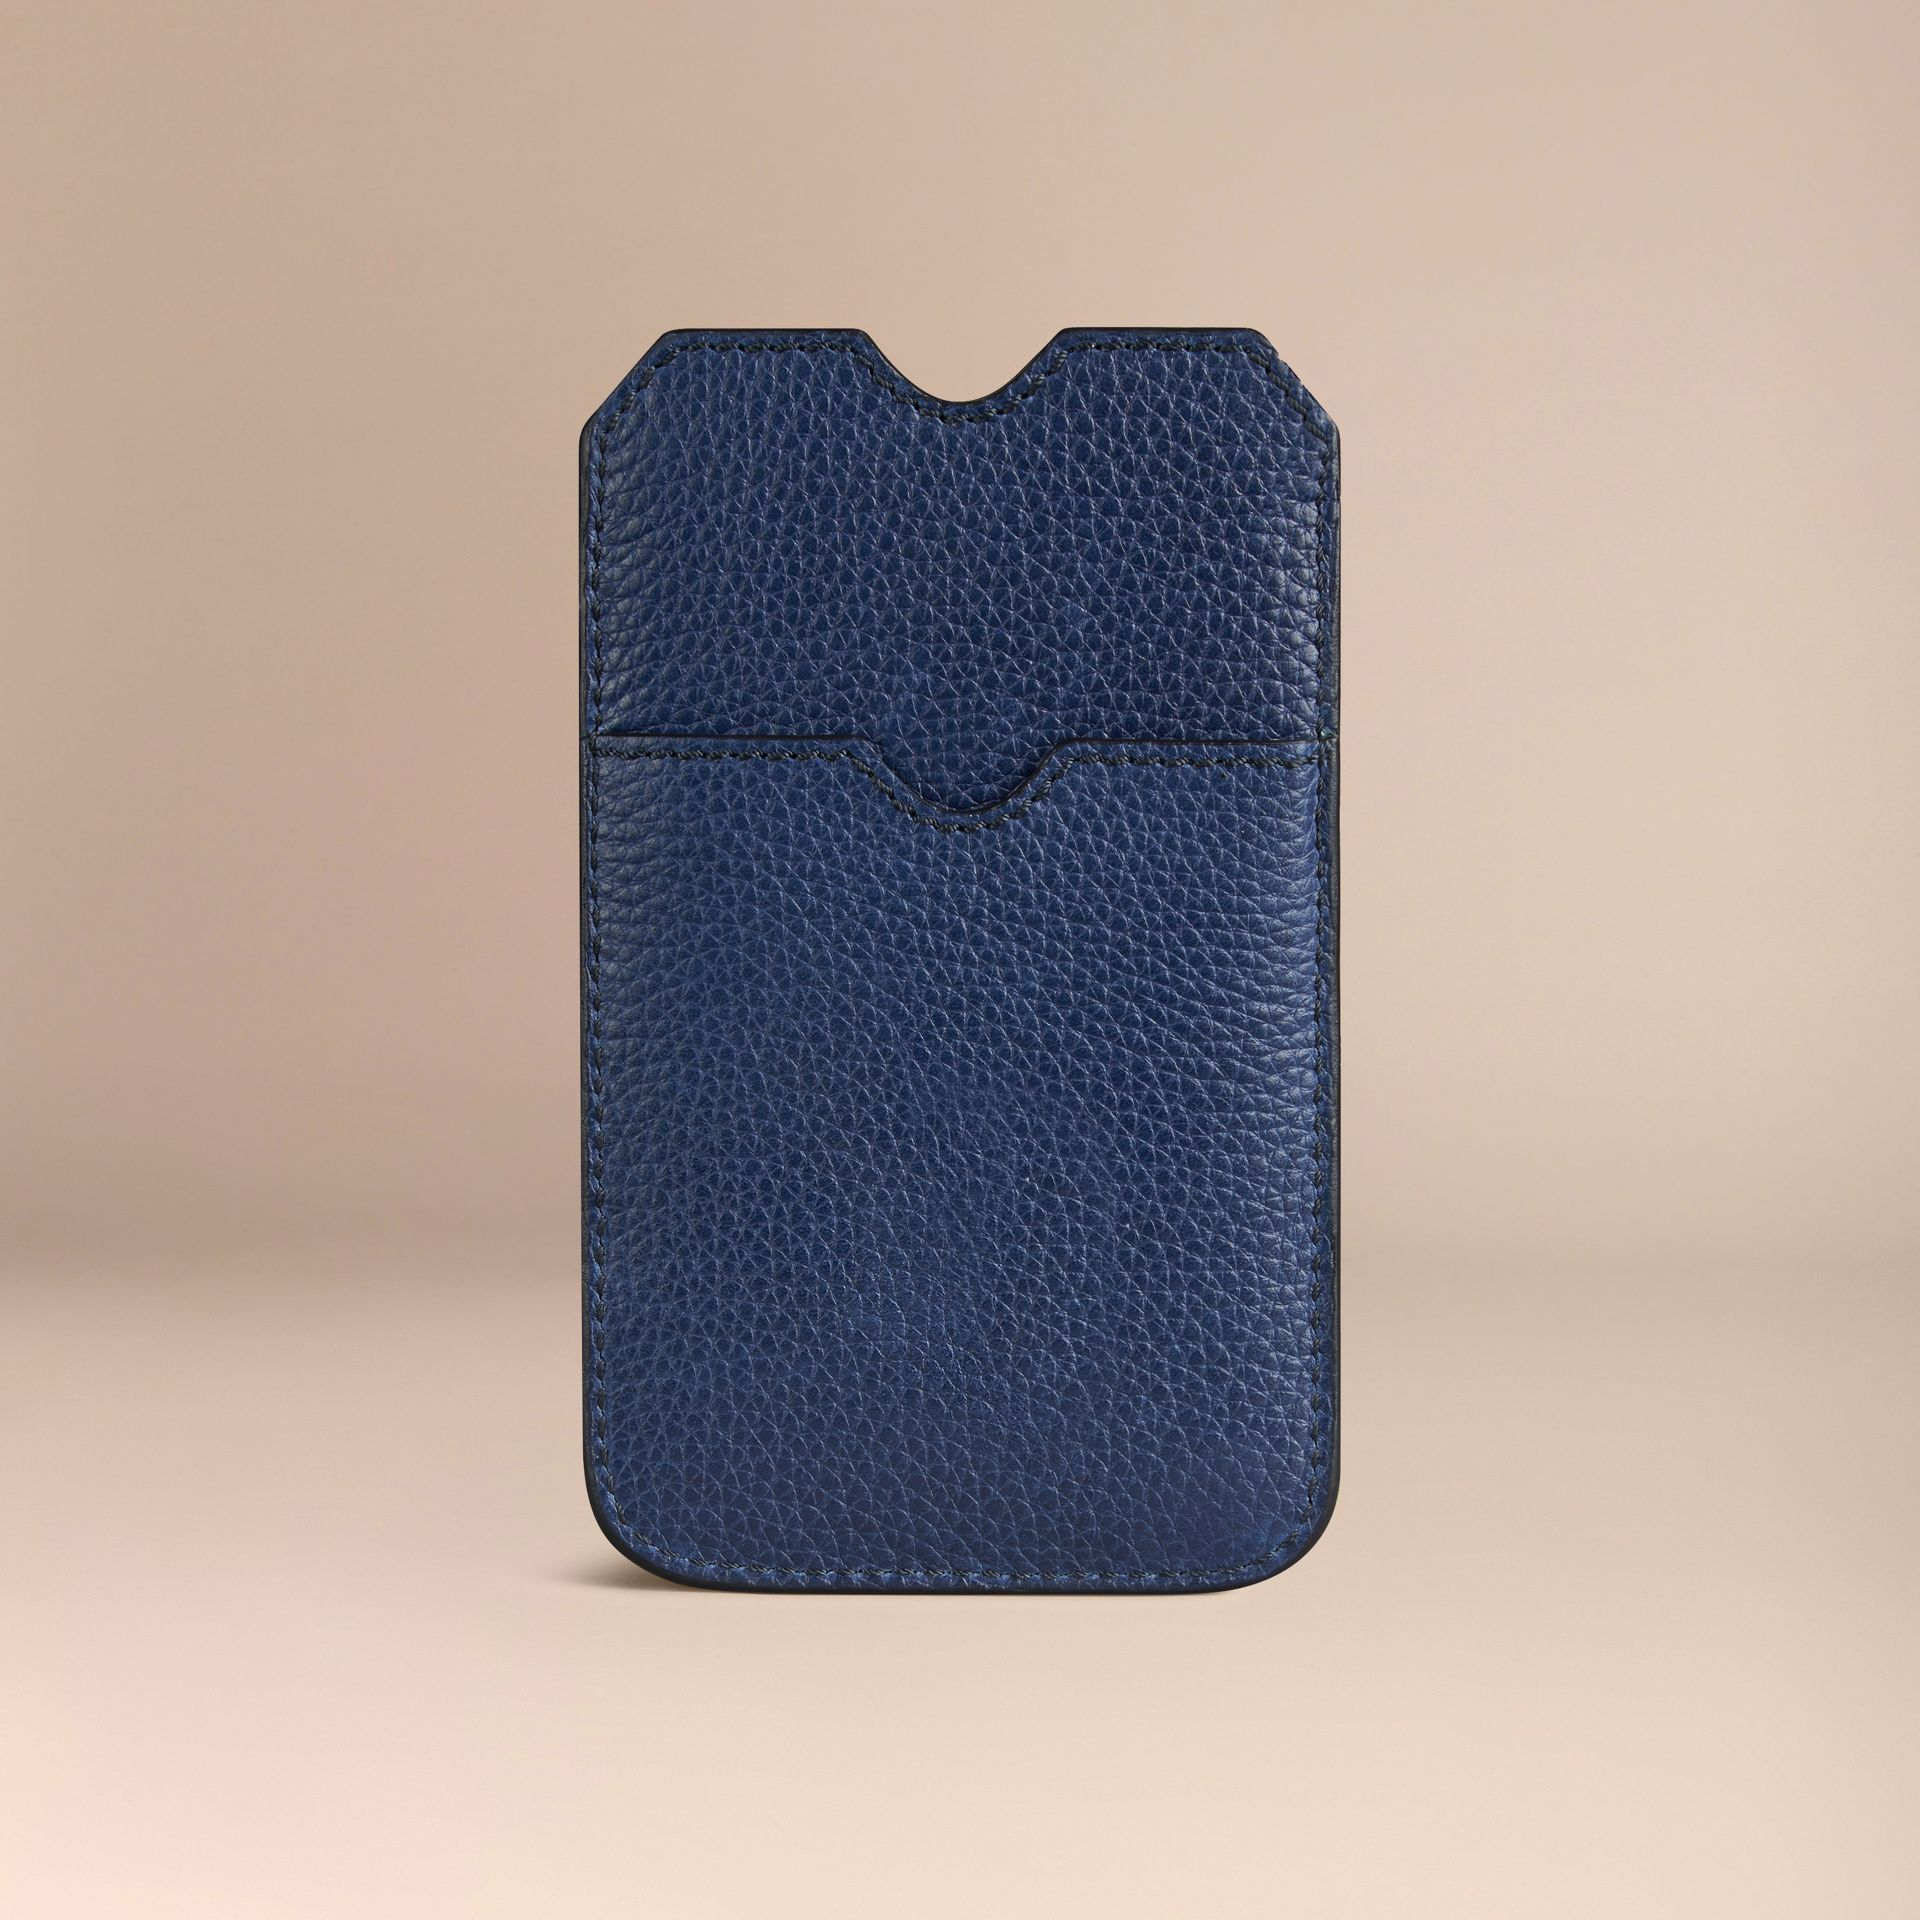 Étui pour iPhone 5/5S en cuir grainé Marine Vif - photo de la galerie 2